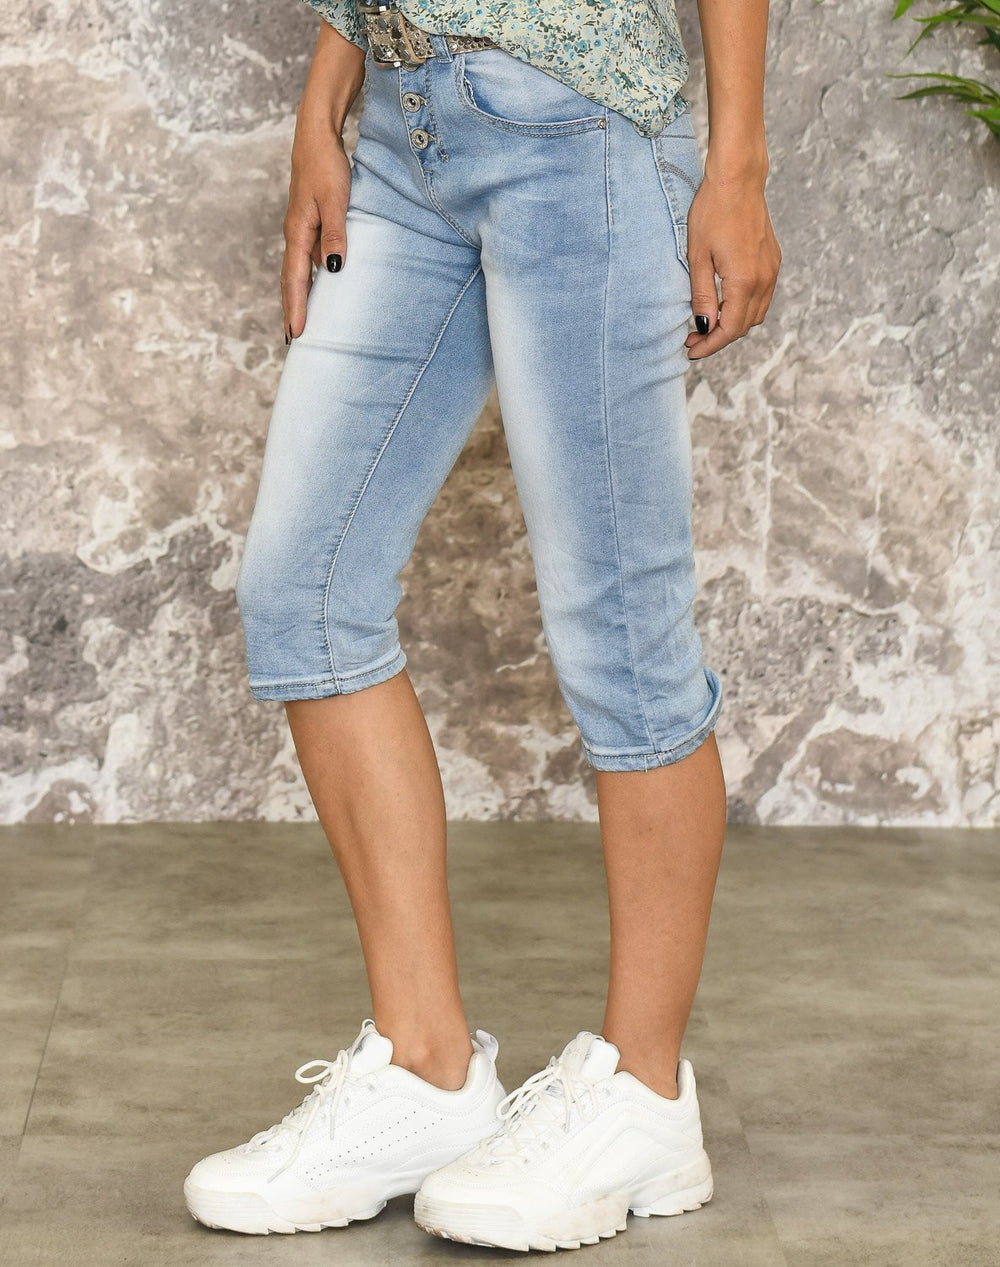 Lillie jeans light blue - Online-Mode